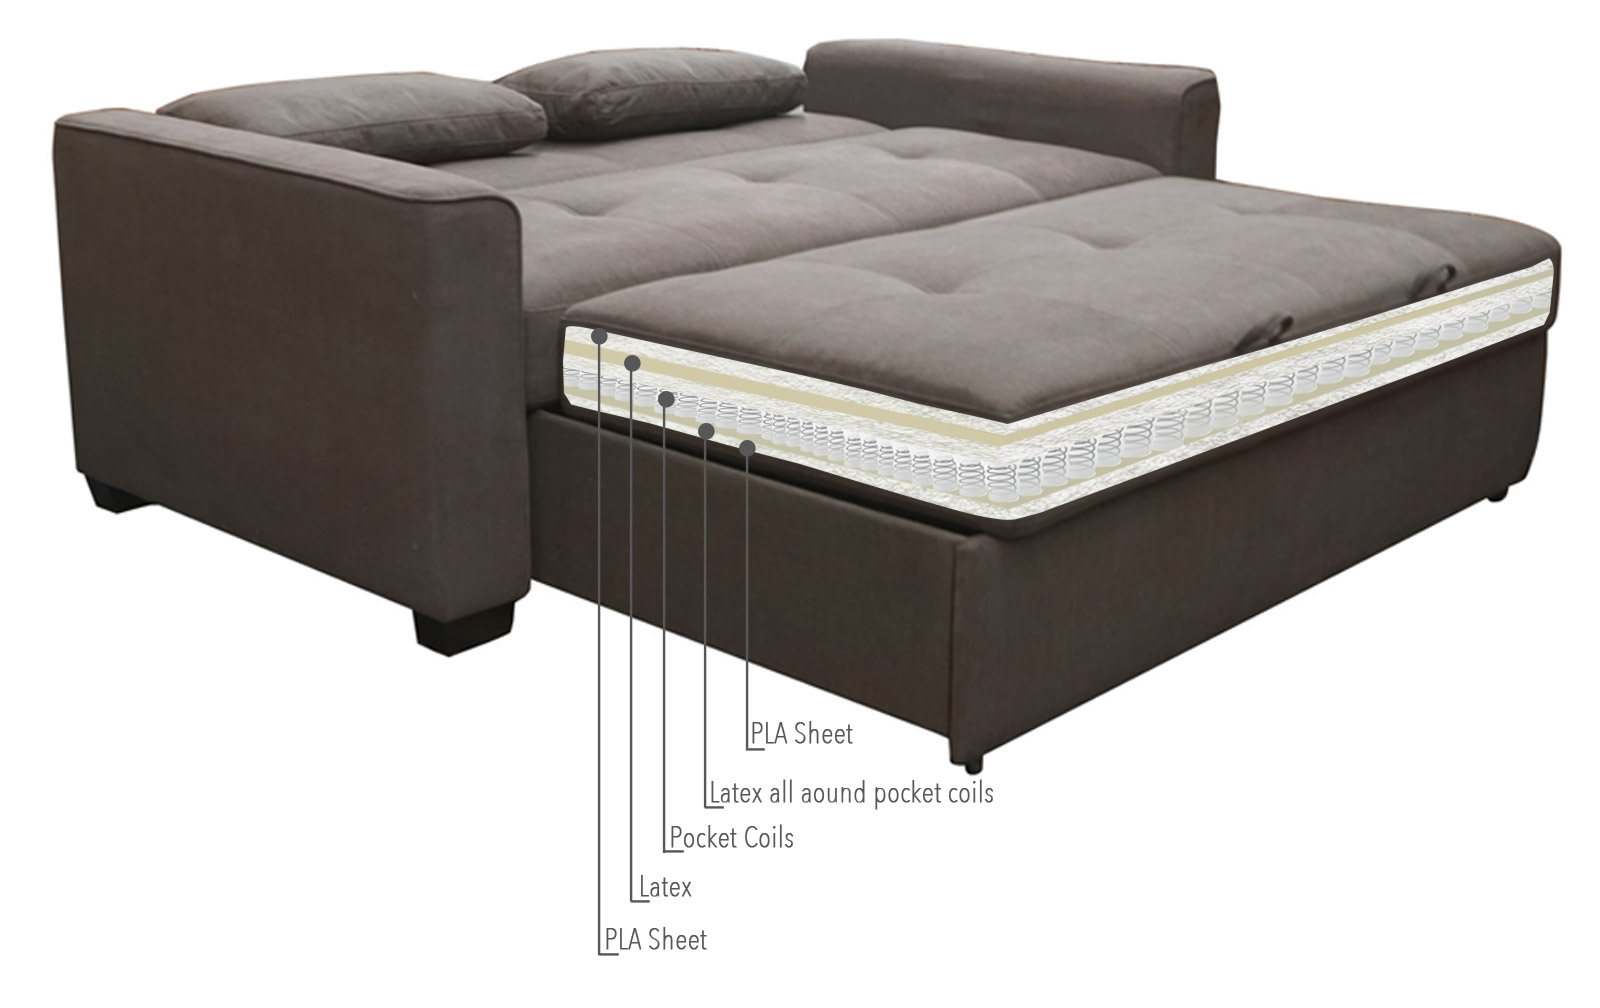 Pullout bed eco friendly sofa